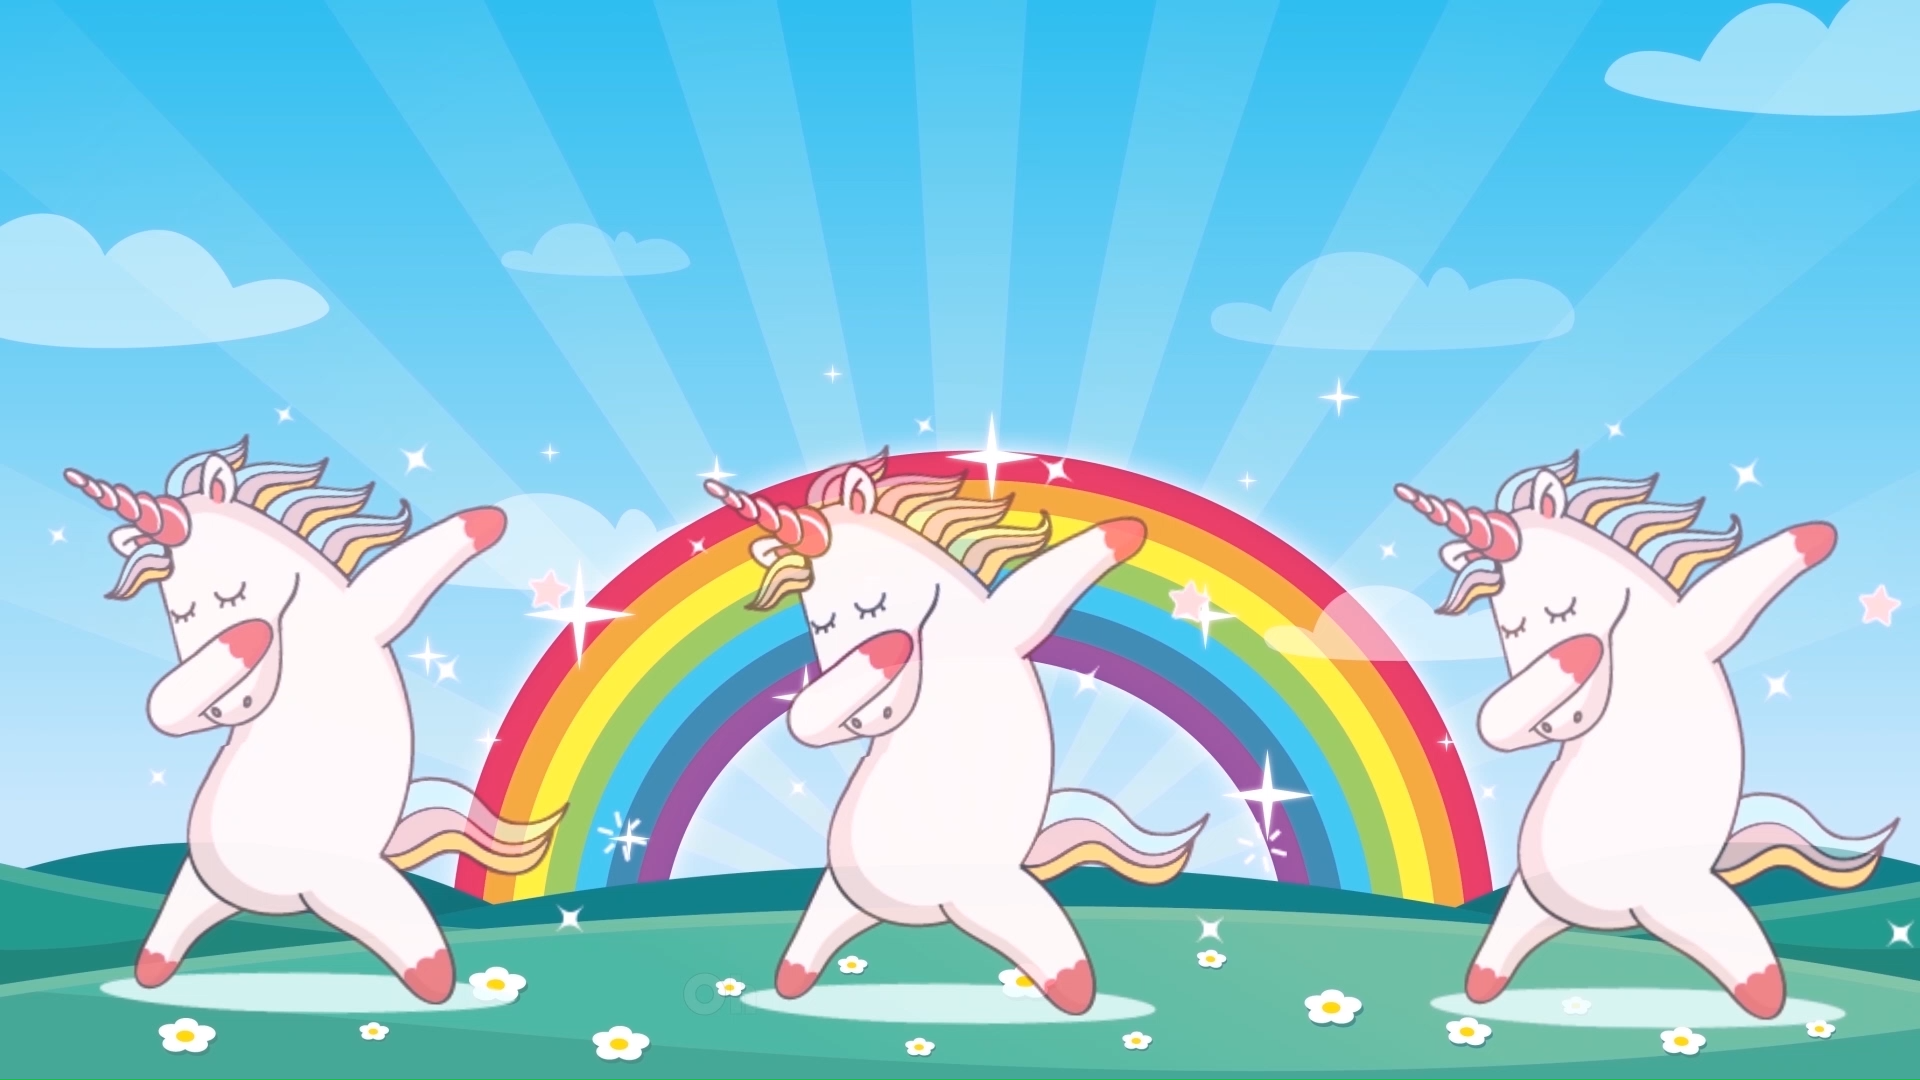 World's first llamacorn song with cute animations! We just adore